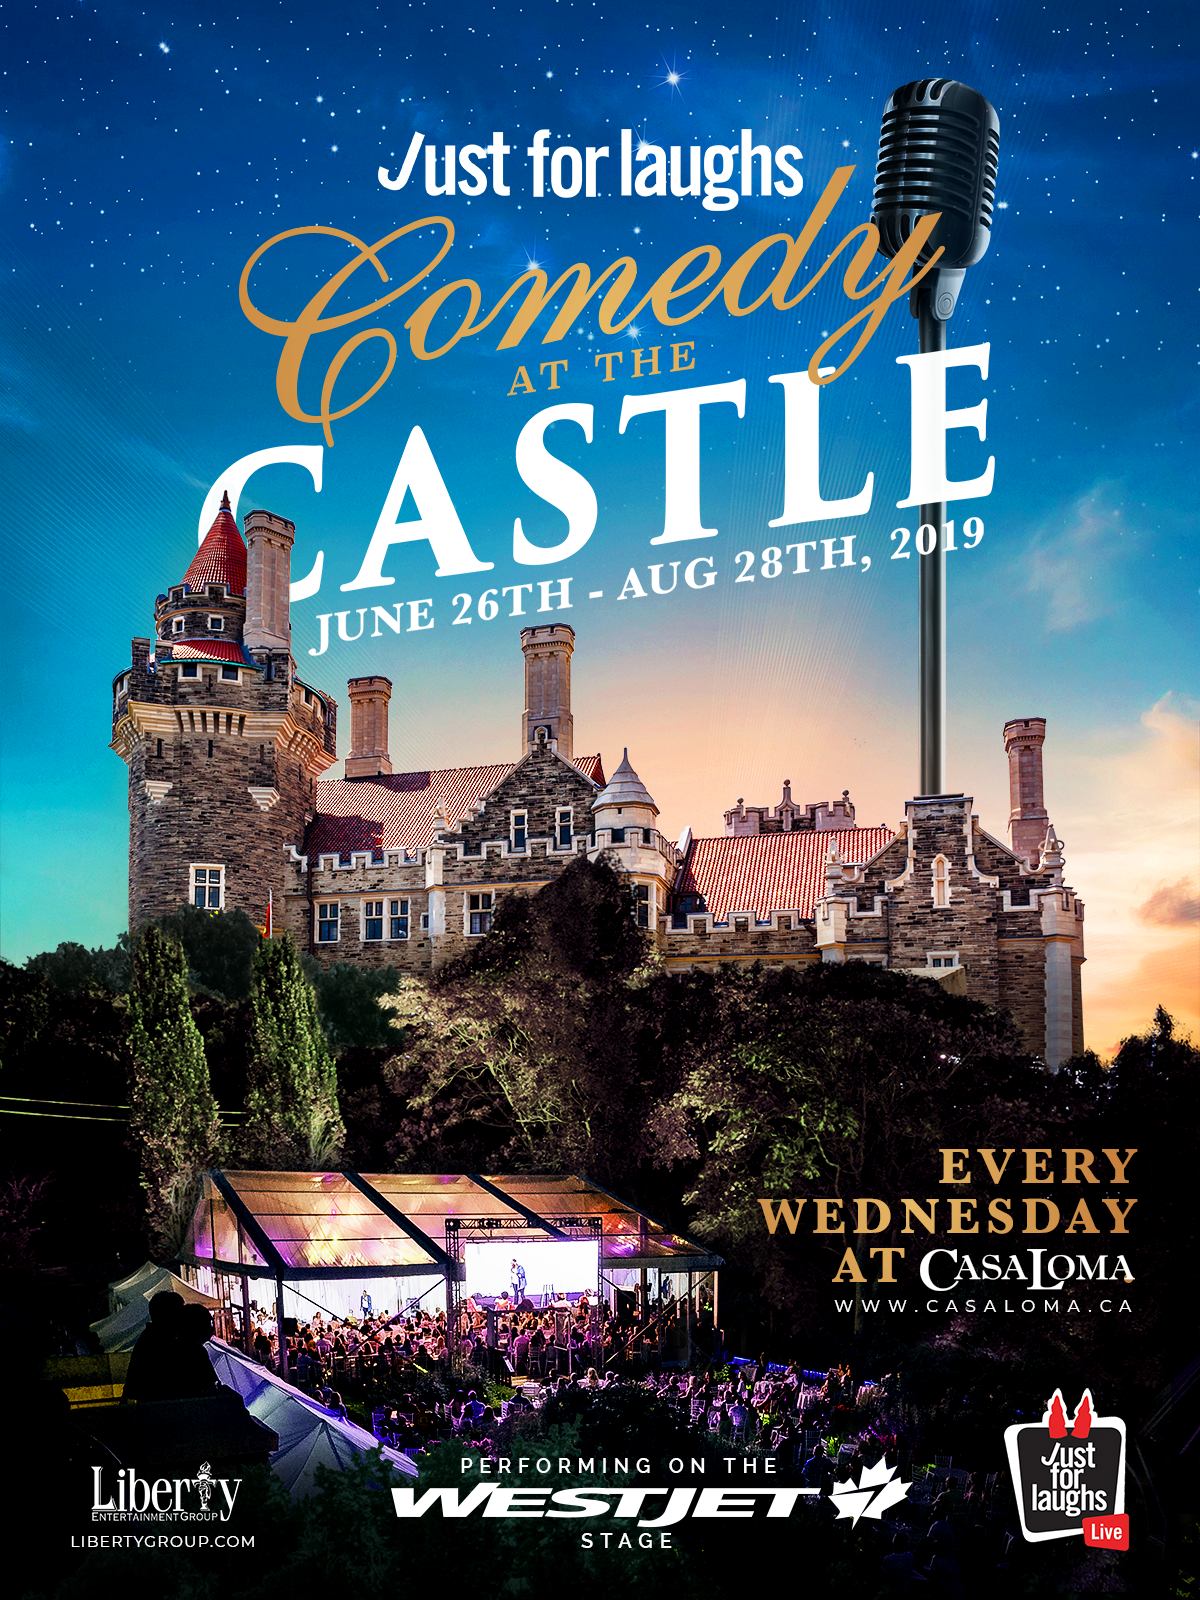 COMEDY AT THE CASTLE